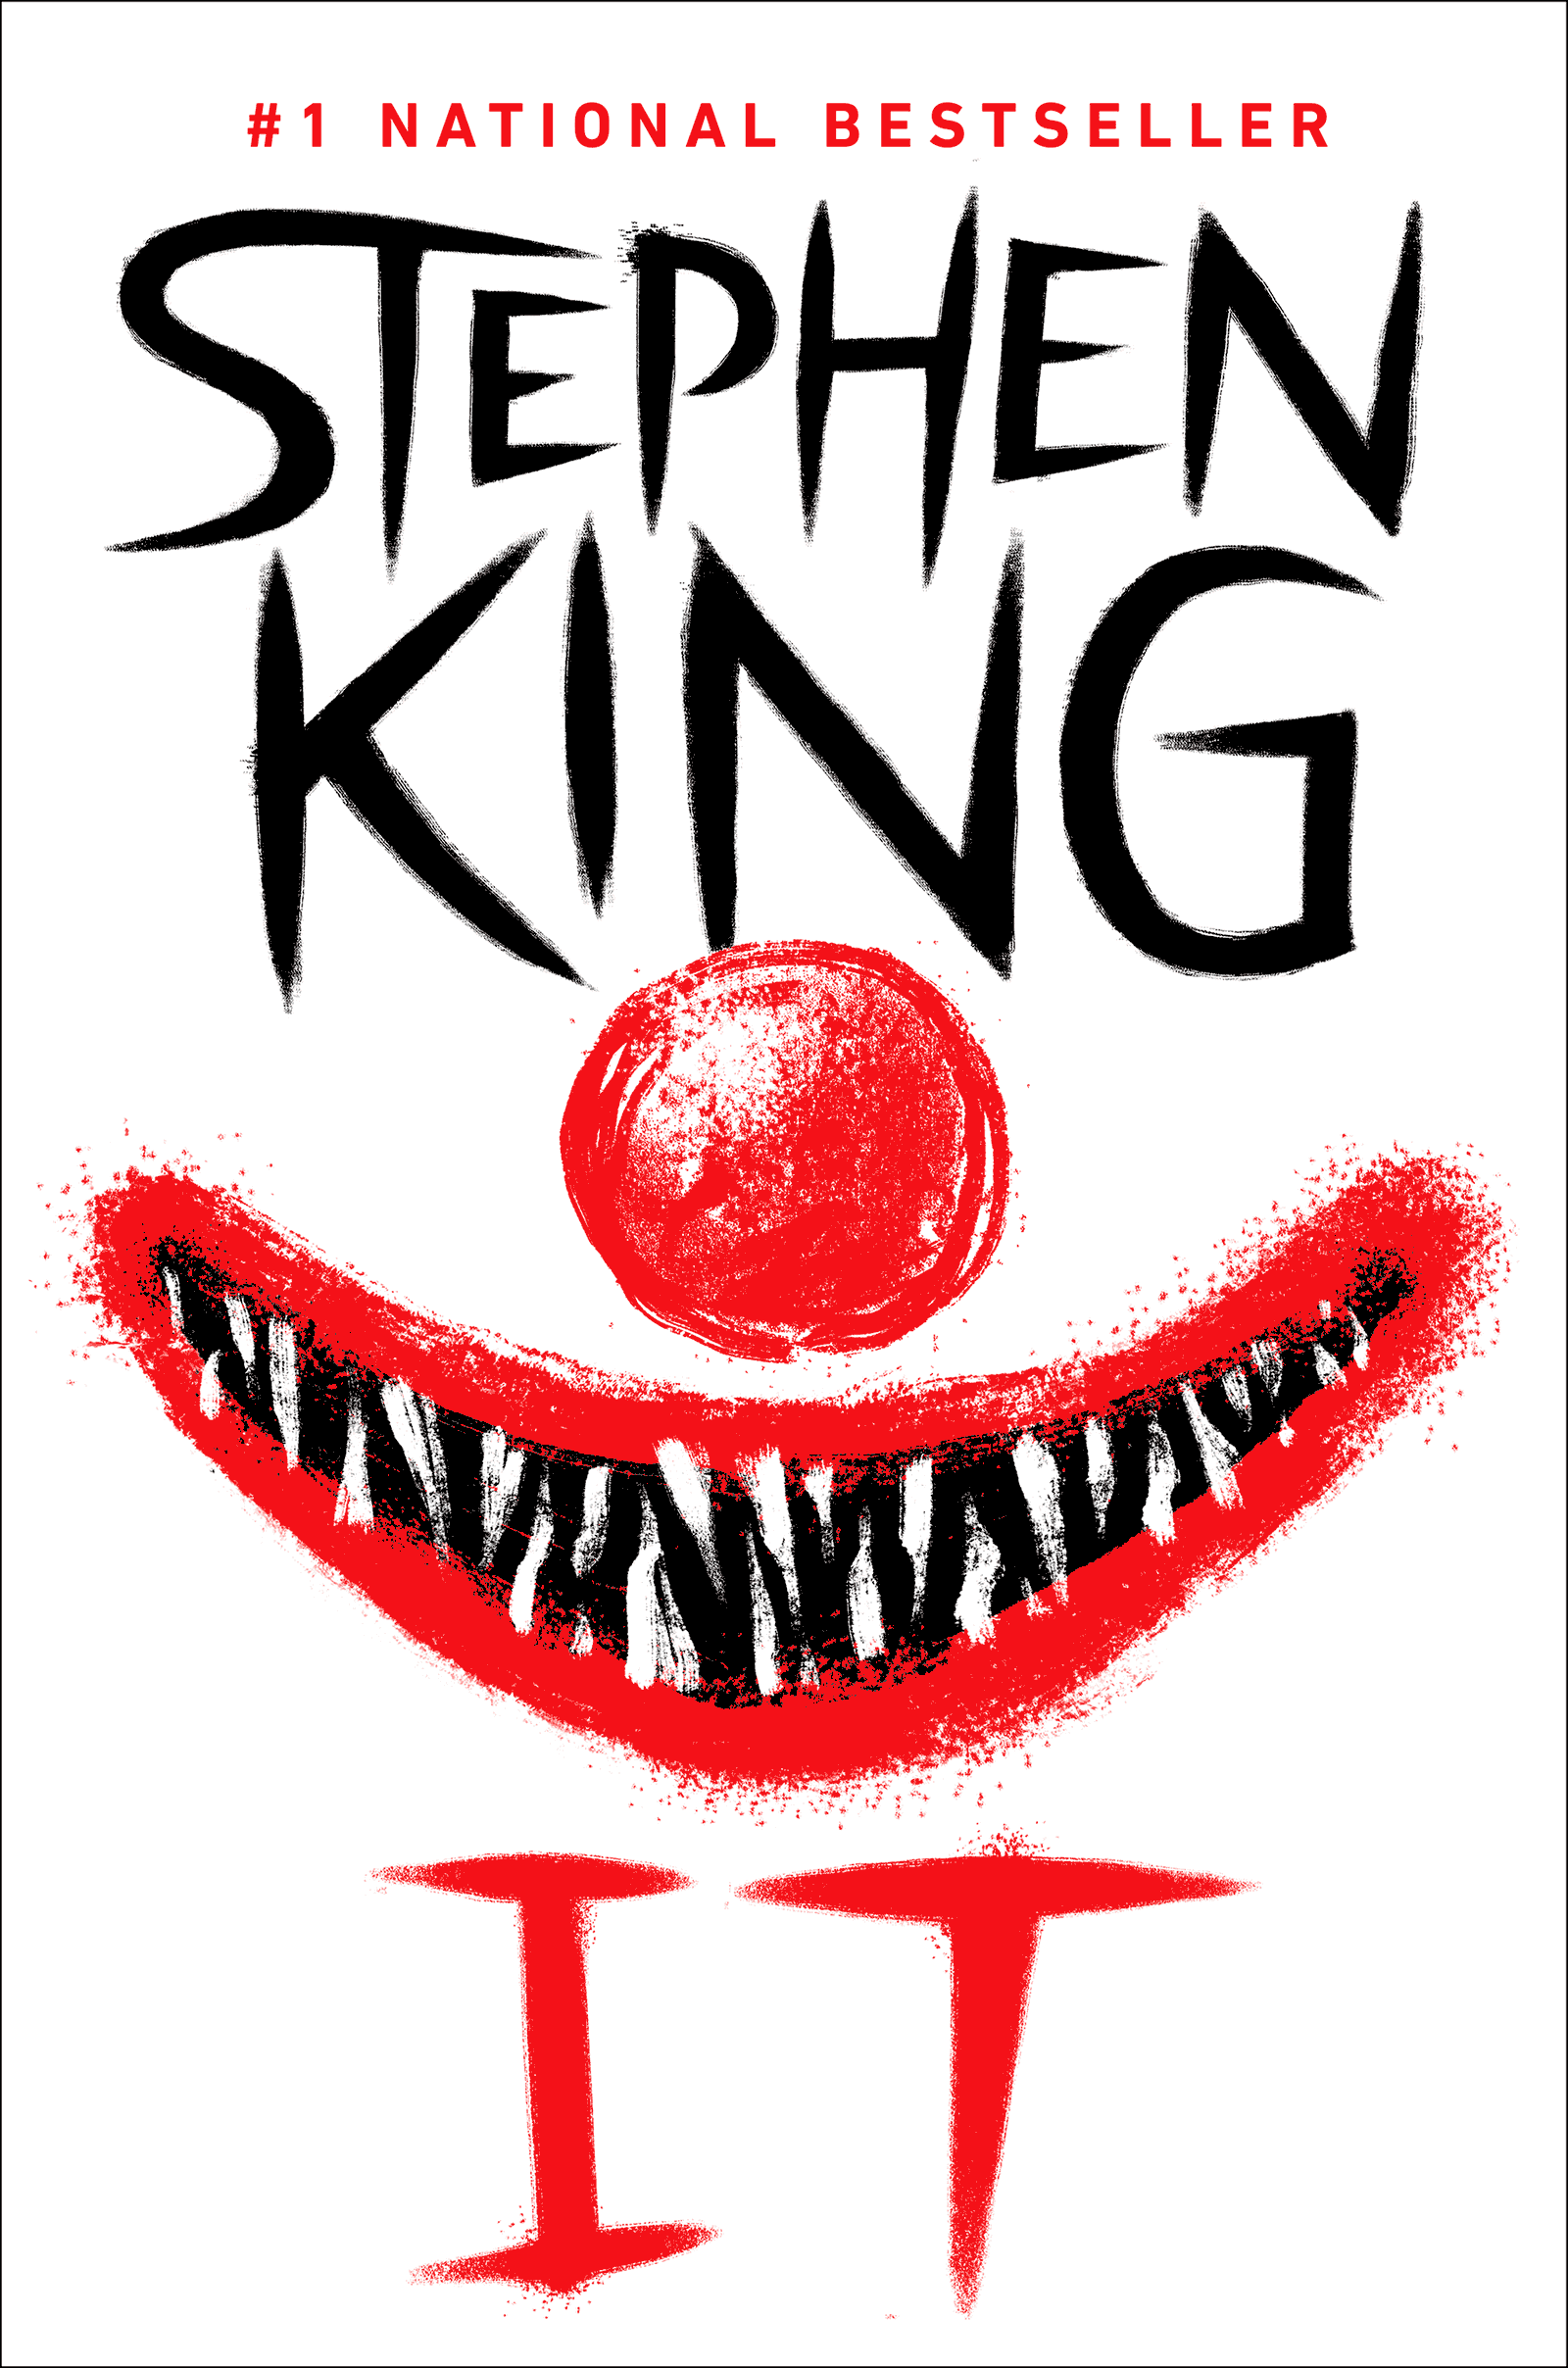 Book review: IT, by Stephen King